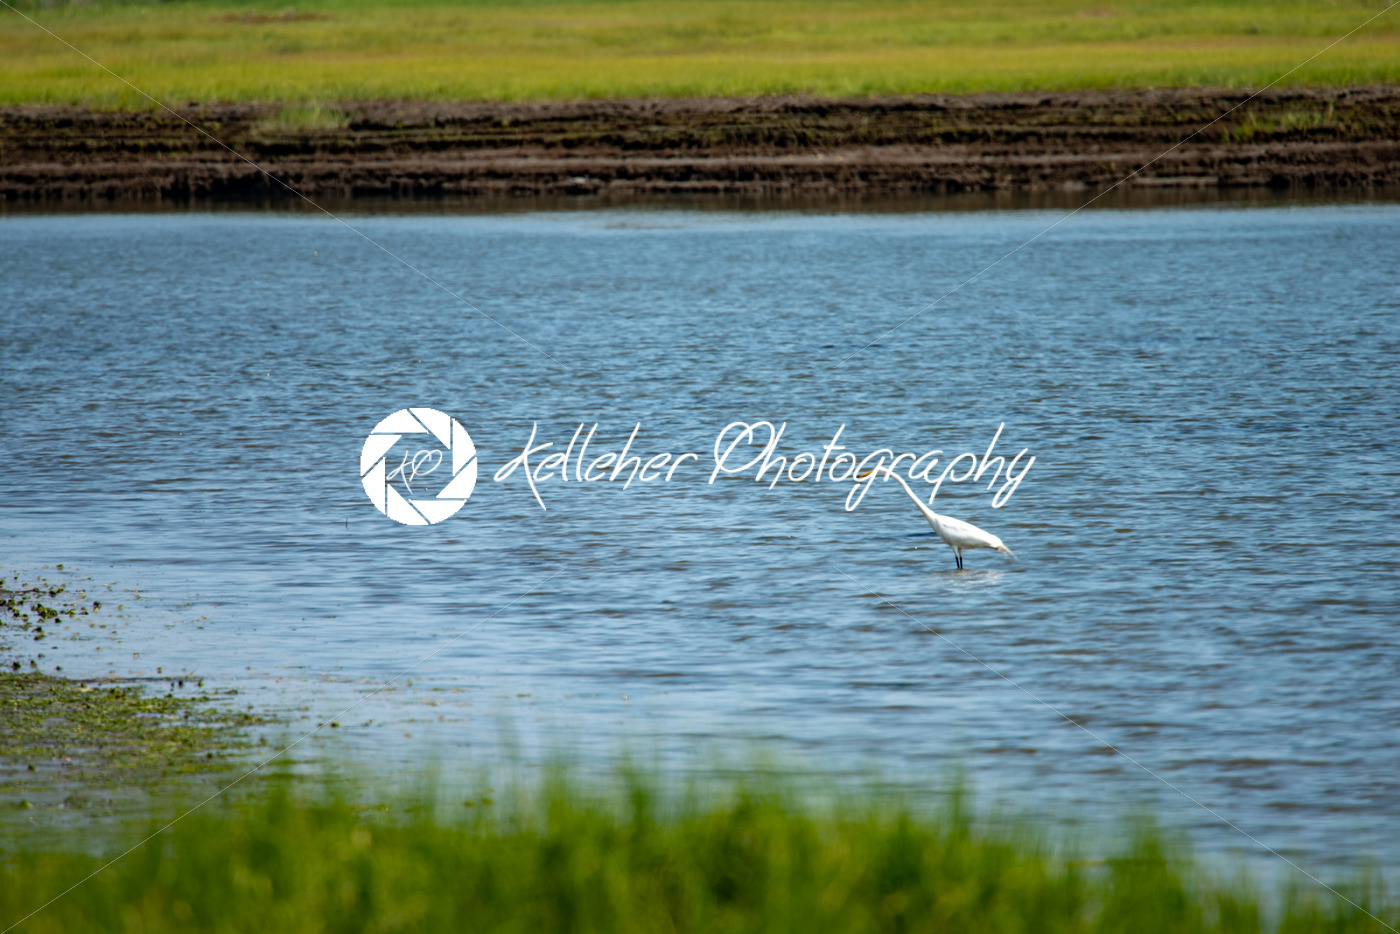 Snowy Egret wading across marsh along New Jersey shore - Kelleher Photography Store